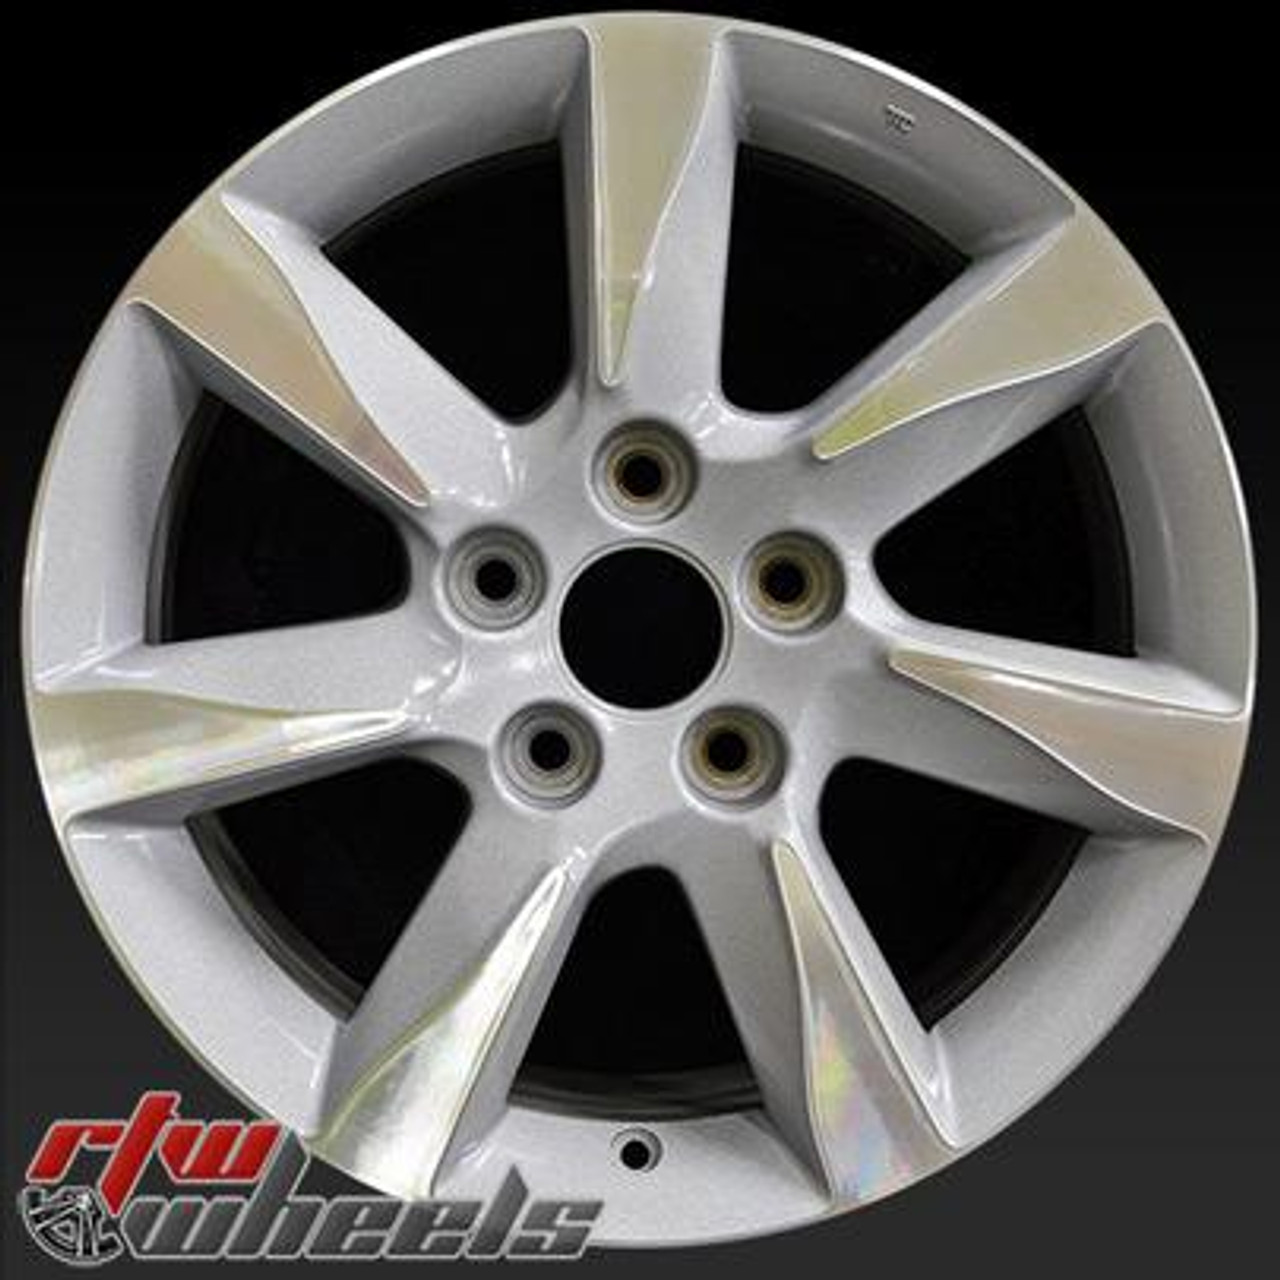 Acura Tl Wheels >> Acura Tl Wheels For Sale 2012 2014 17 Machined Silver Rims 71801